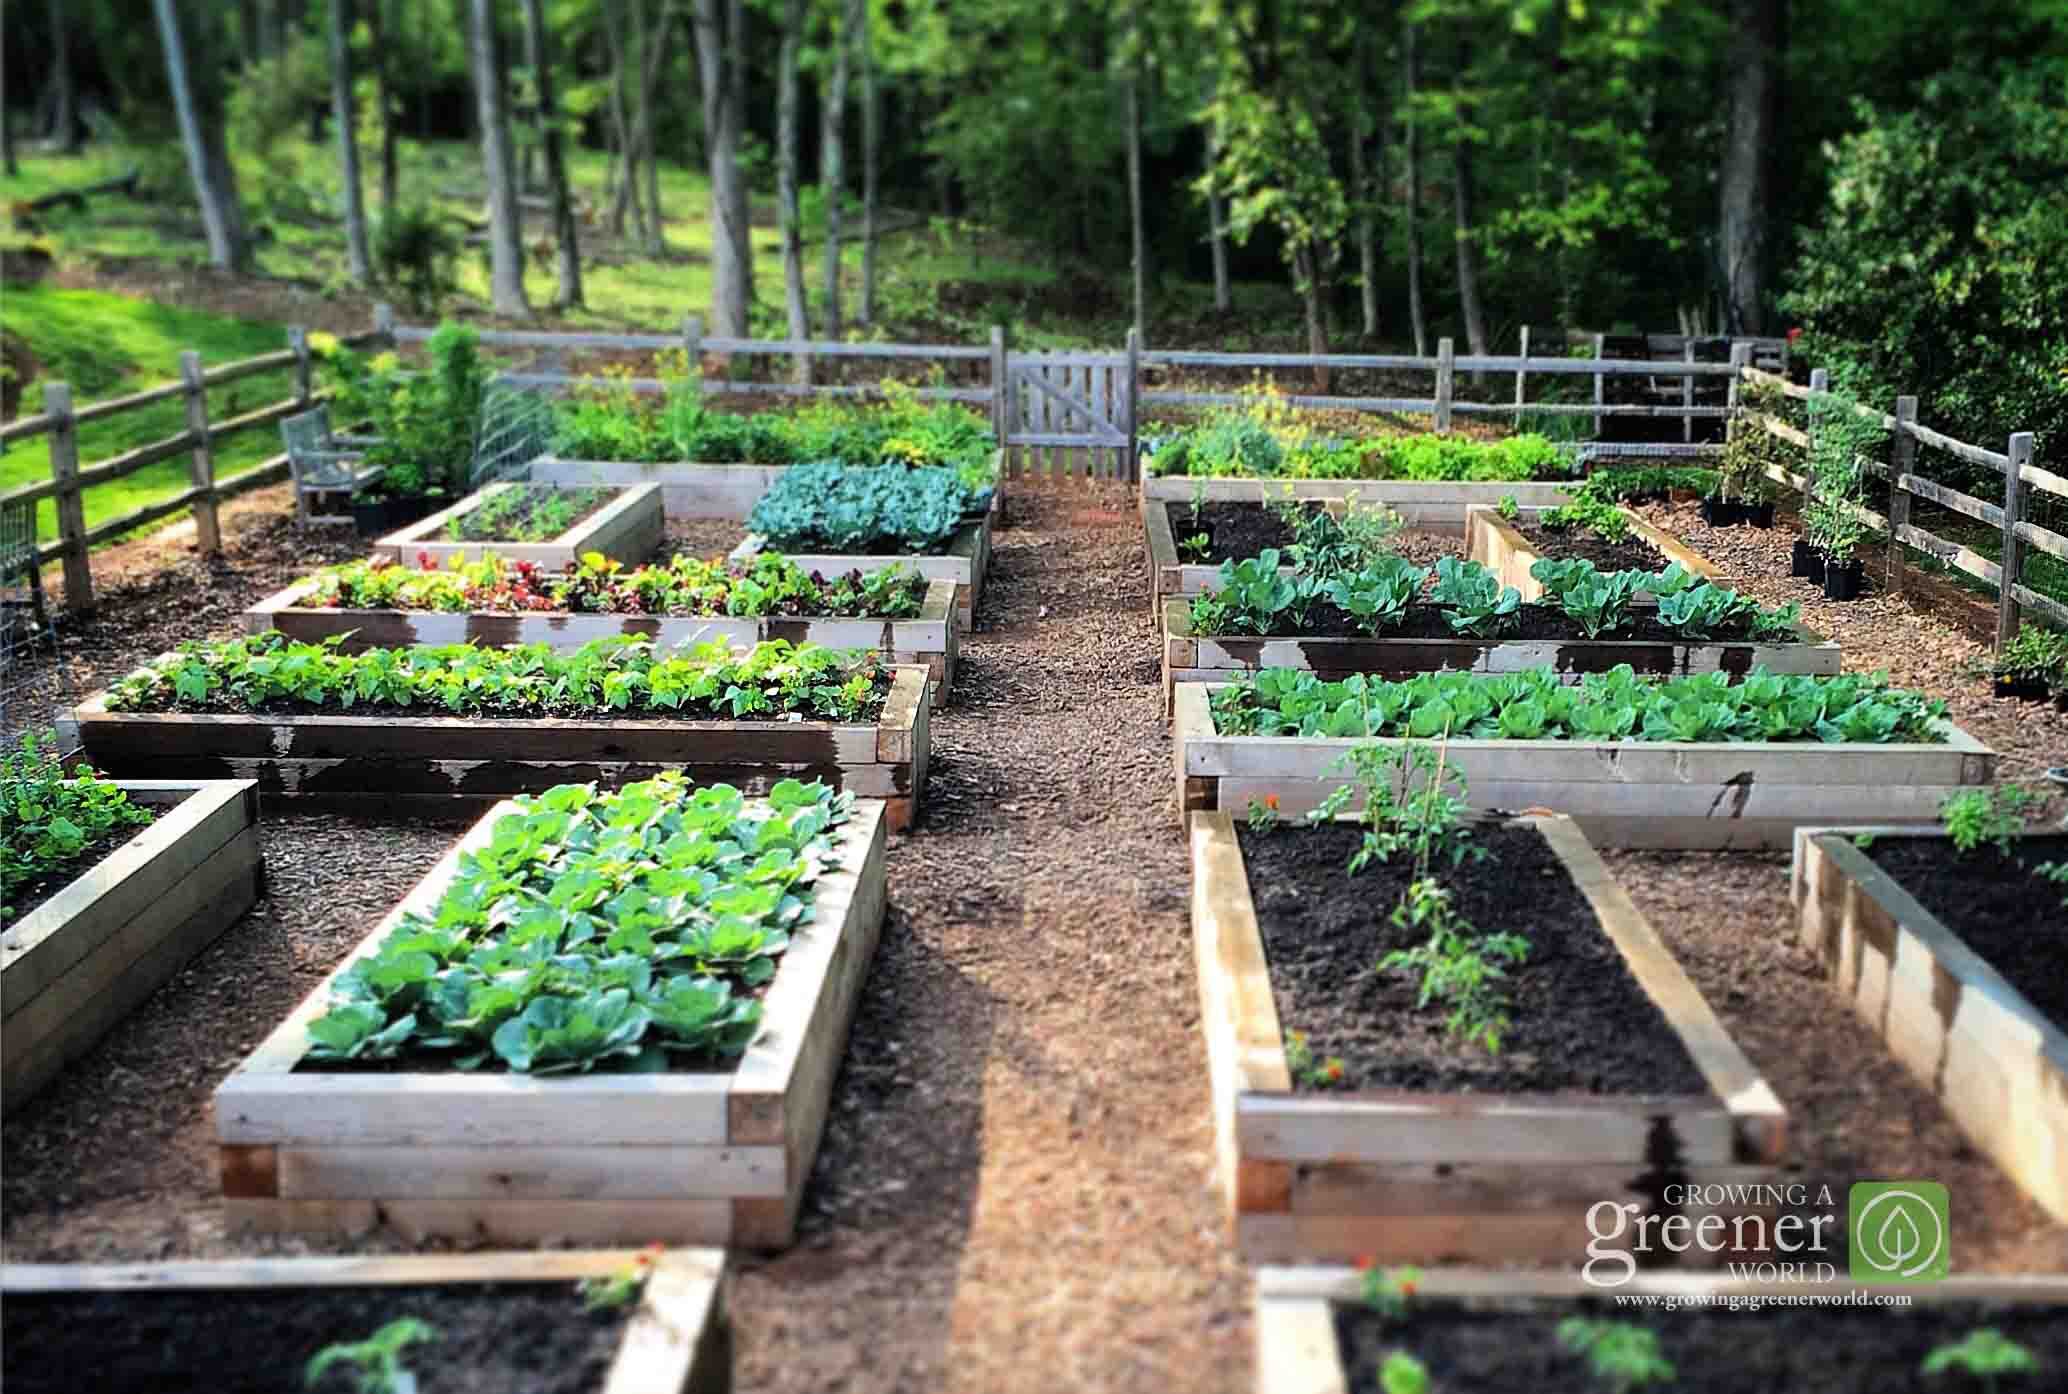 Three Key Benefits of Gardening in Raised Beds - Growing A ... on raised garage plans, doctors office plans, wagon wooden model plans, raised beds from logs, raised planter plans, raised flower box plans, raised beds on a budget, greenhouse plans, cold frame plans, raised vegetable beds, window box plans, raised ranch plans, raised planter beds, raised deck plans, raised beds on a slope, raised sandbox plans, raised beds with tin, shed plans, raised house plans, raised playhouse plans,